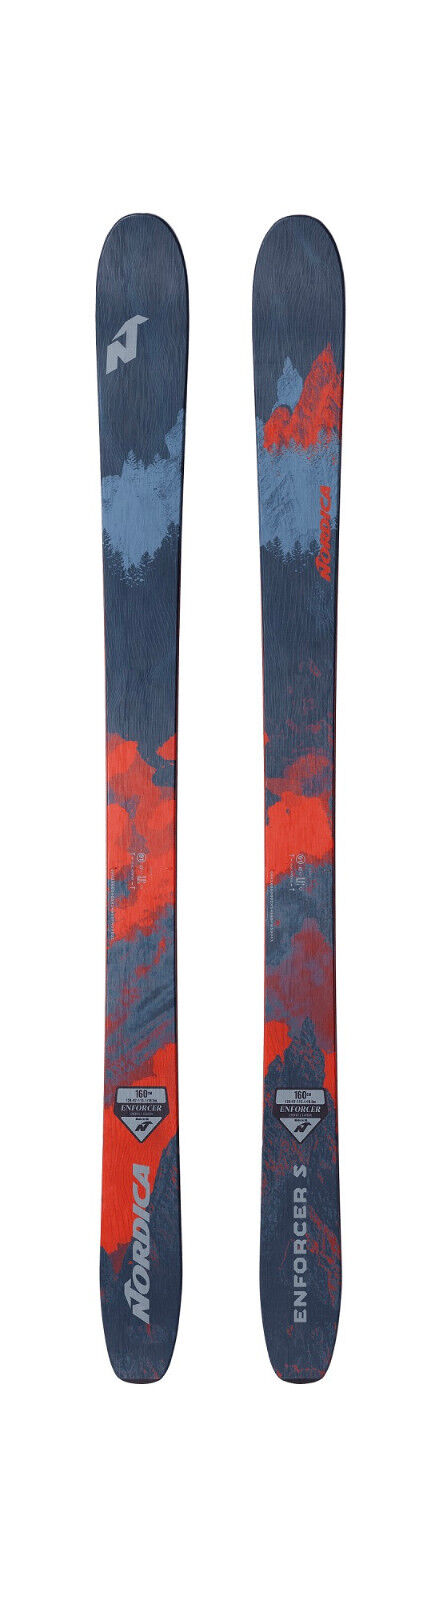 ski Freeride Junior Femme NORDICA ENFORCER S S S saison seulement ski 2018/2019 4bebf8